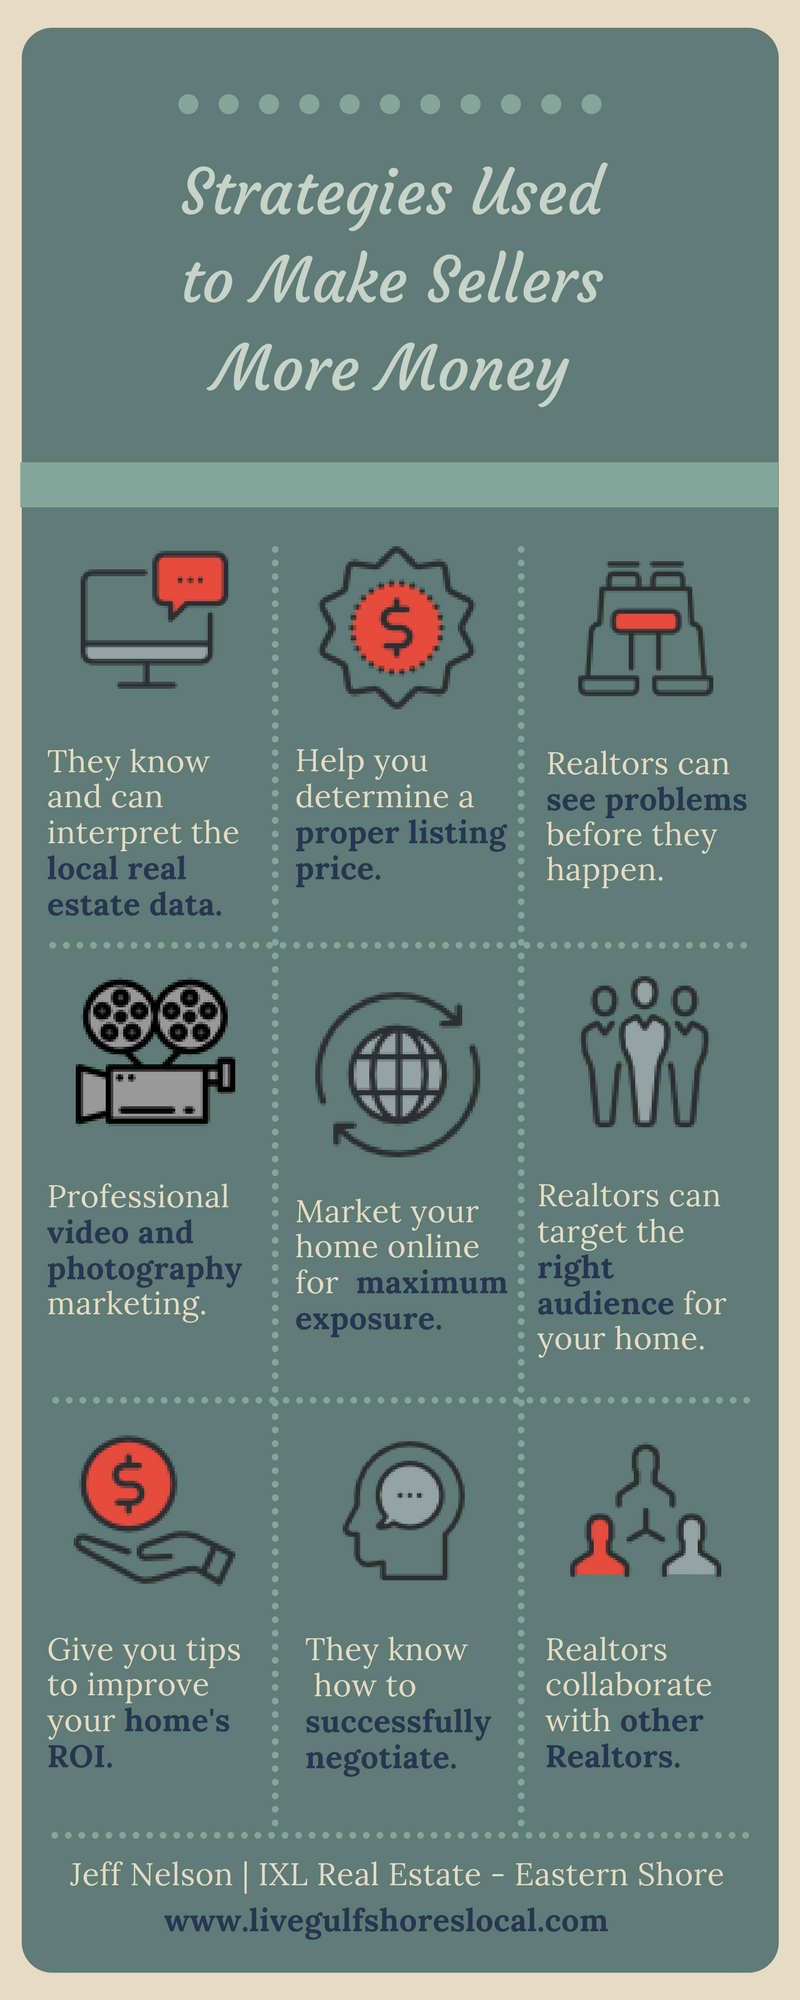 Strategies Used for Sellers - Infographic